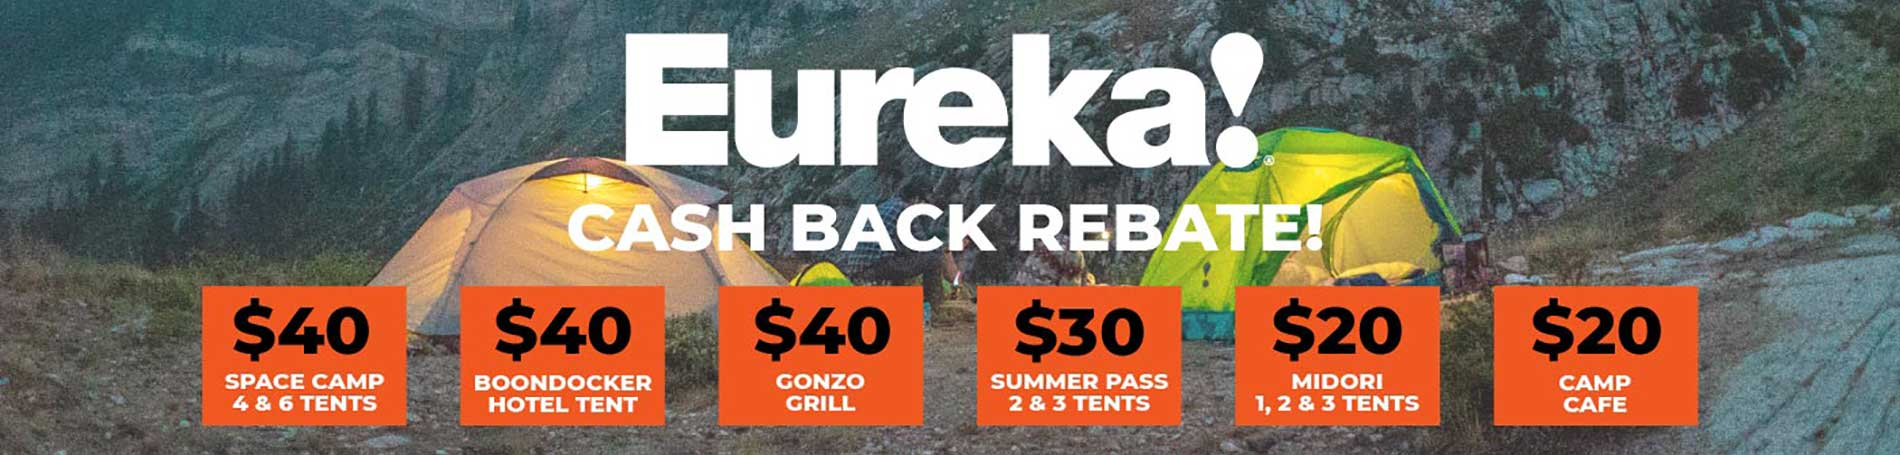 Eureka Rebate Offers 2019